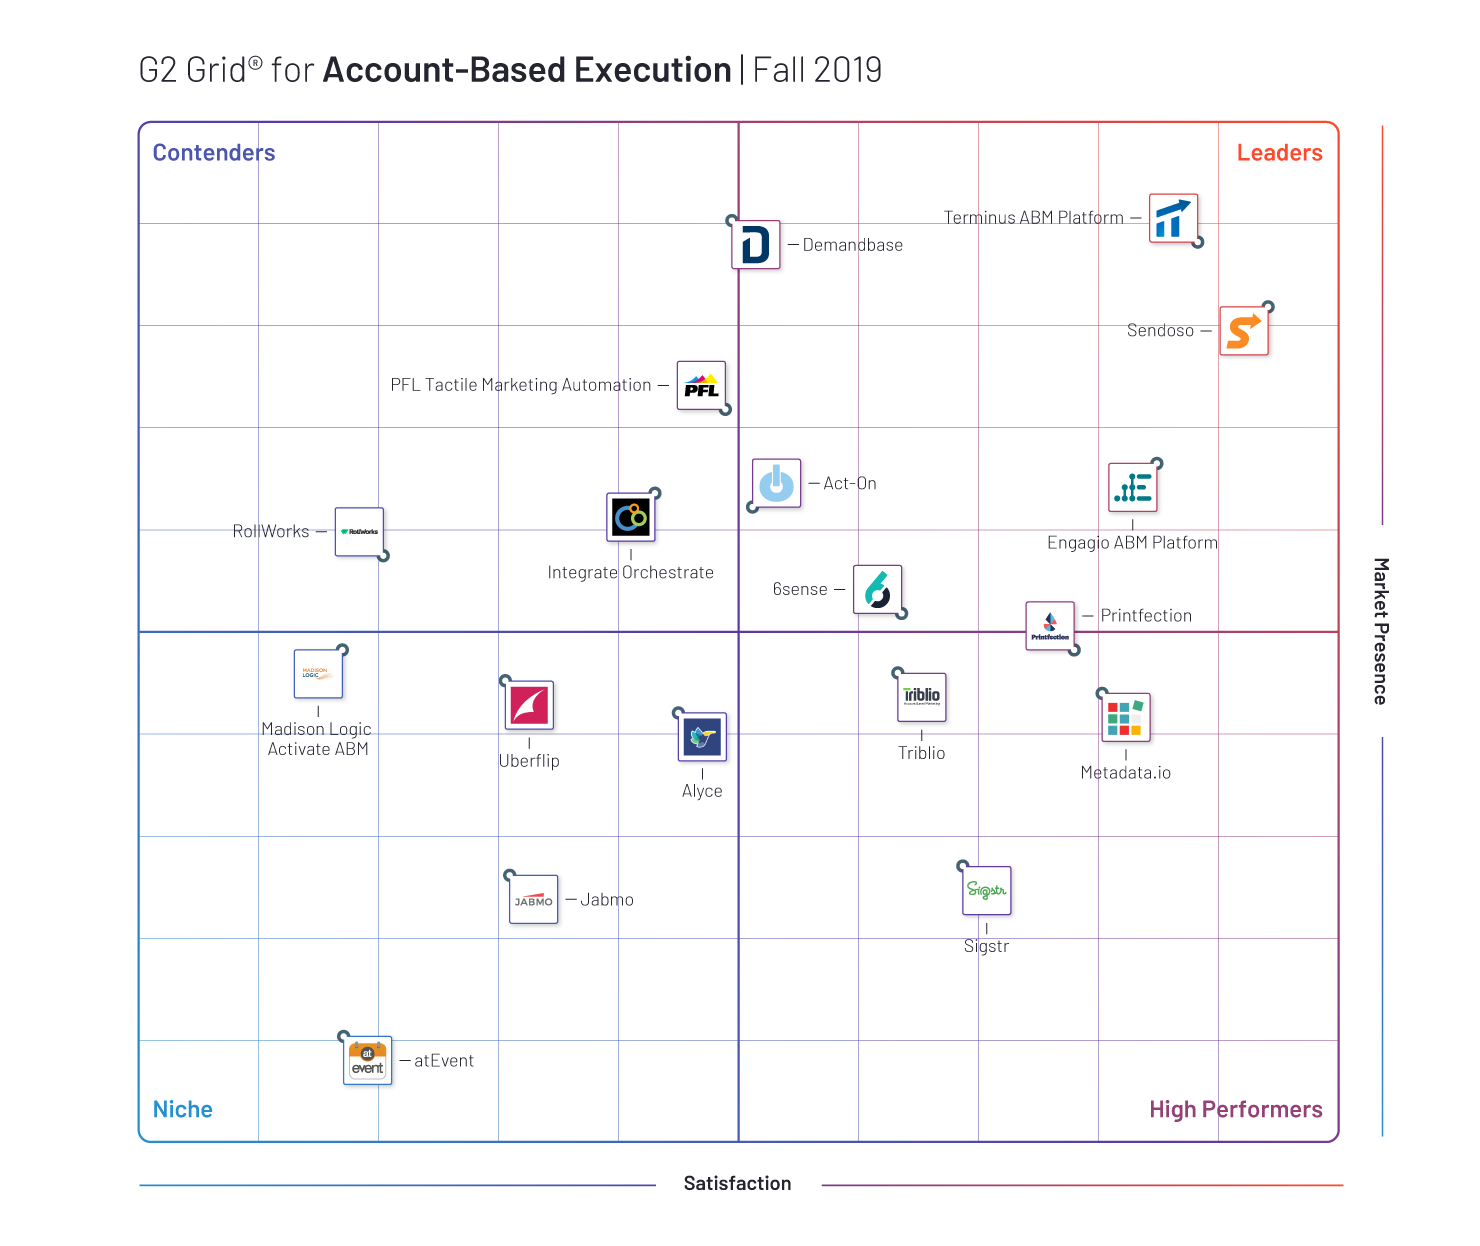 Grid for Account-Based Execution, Fall 2019